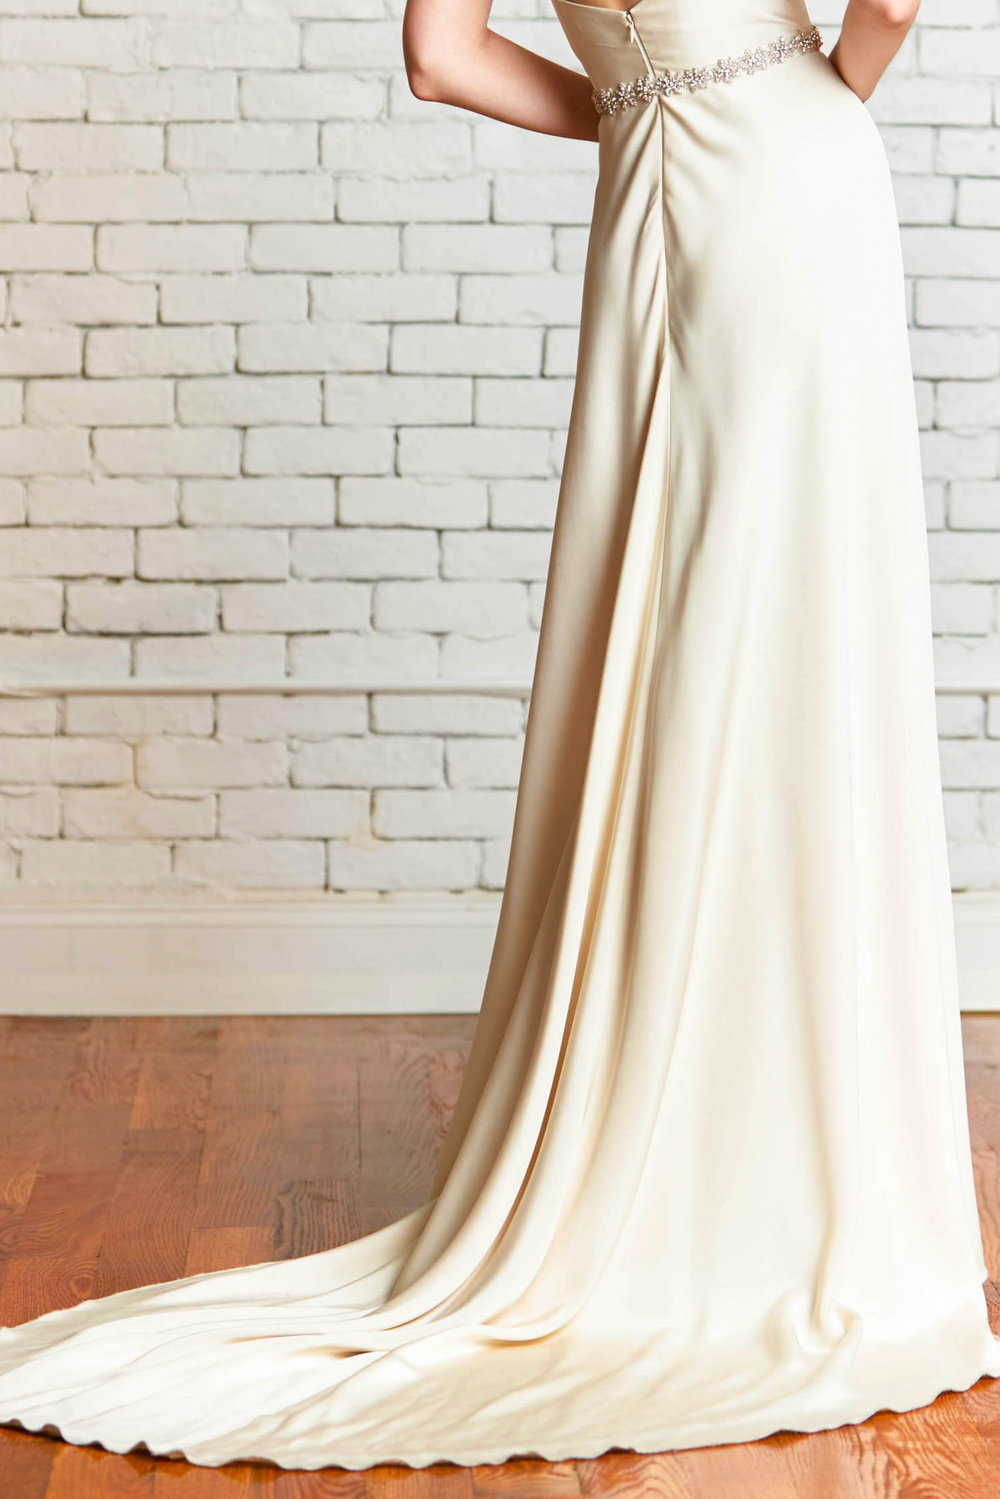 Grace_skirt-back_Modern_Bride_Clean_Silhouette_Train.jpg